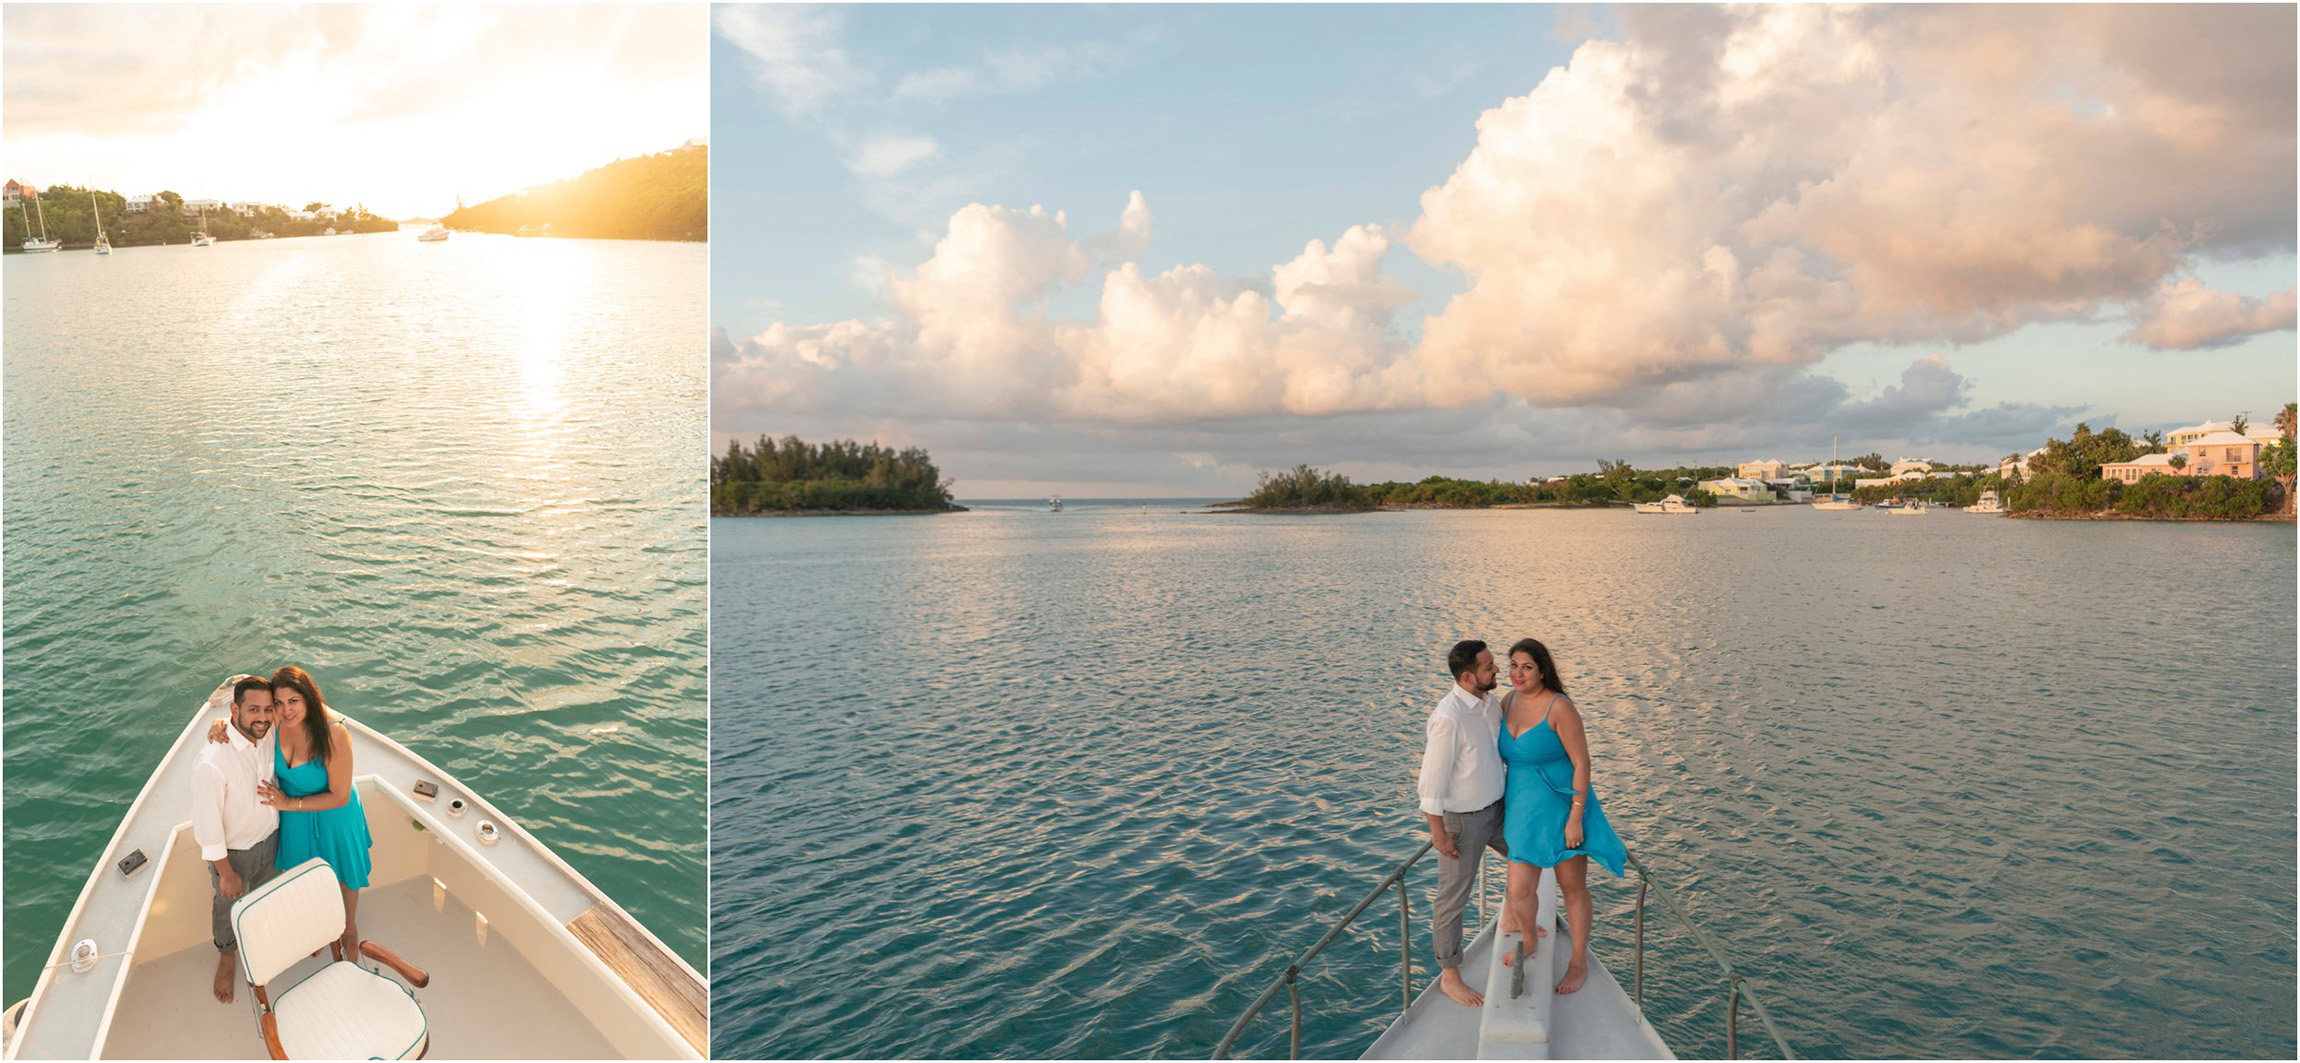 ©FianderFoto_Bermuda Proposal Photographer_011.jpg